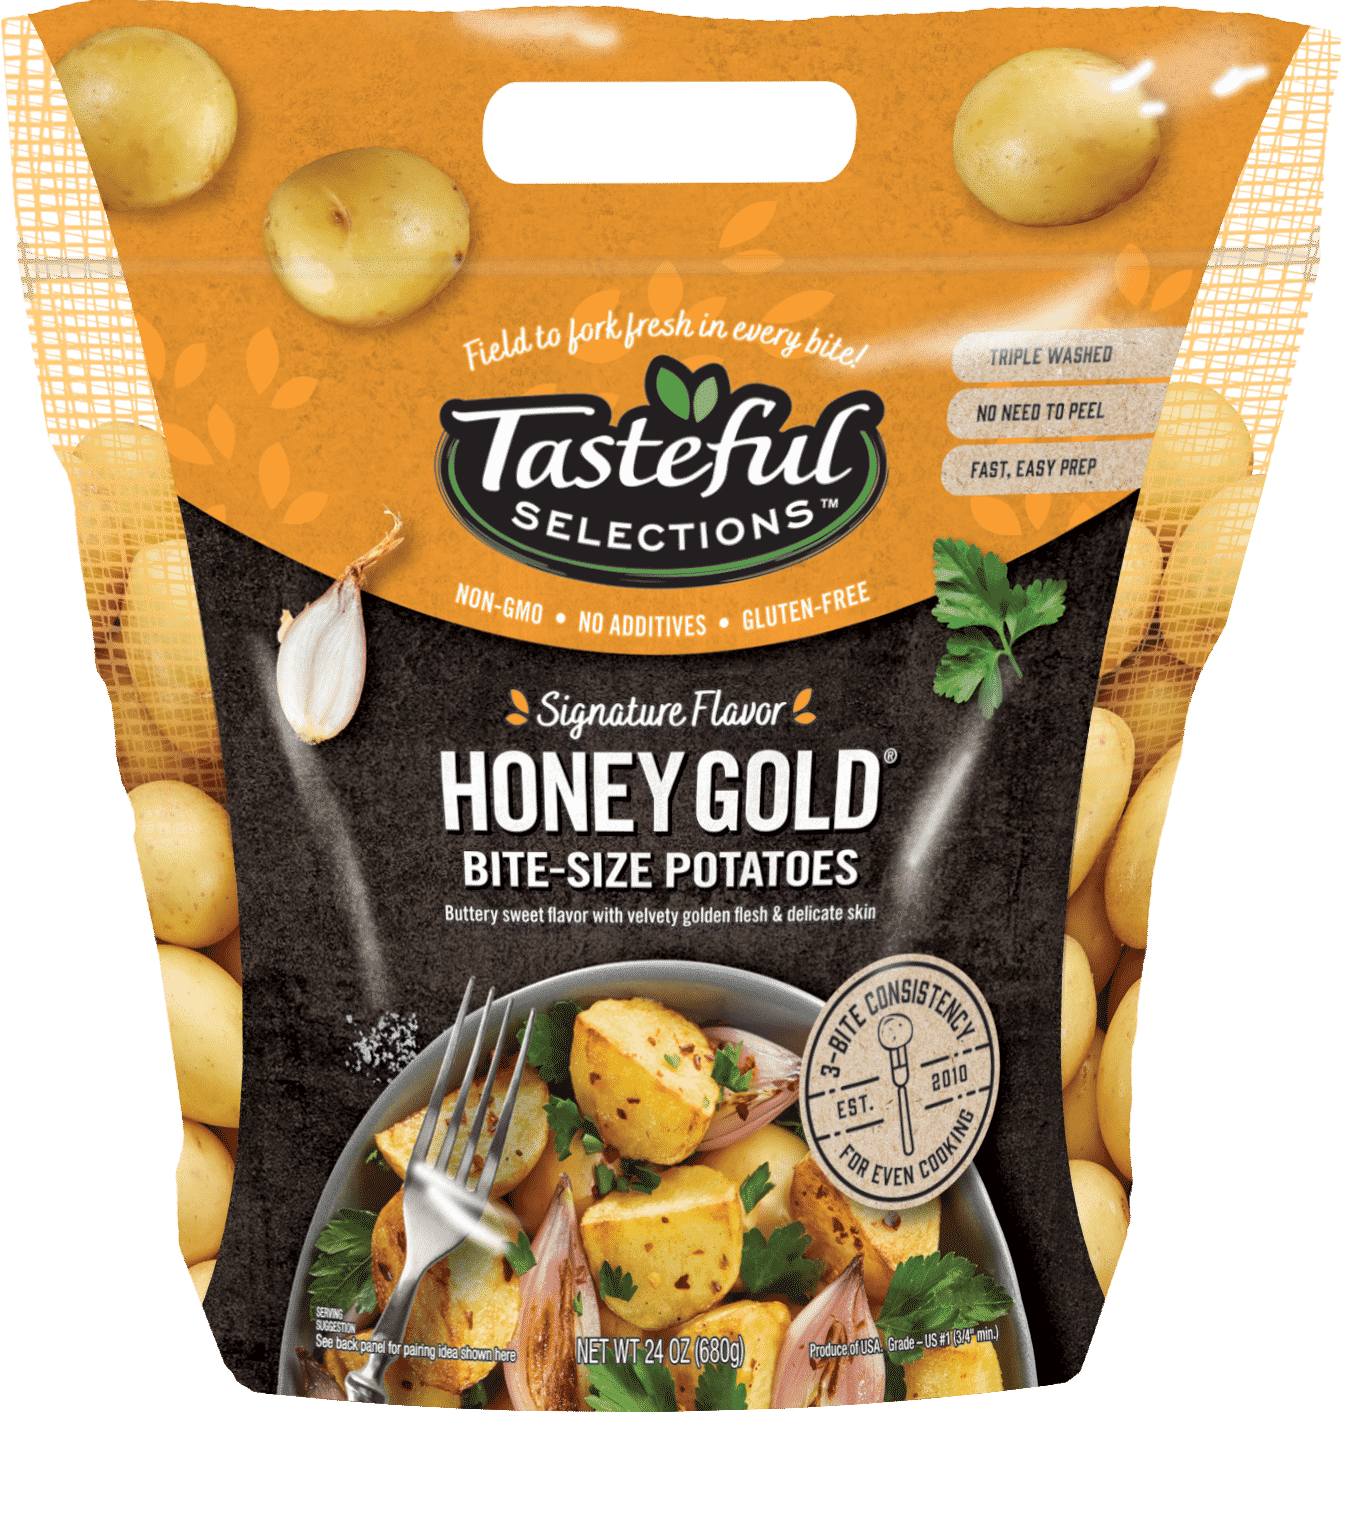 Tasteful Selections Honey Gold Bite-Size Potatoes Gusseted Bag 3-Bite